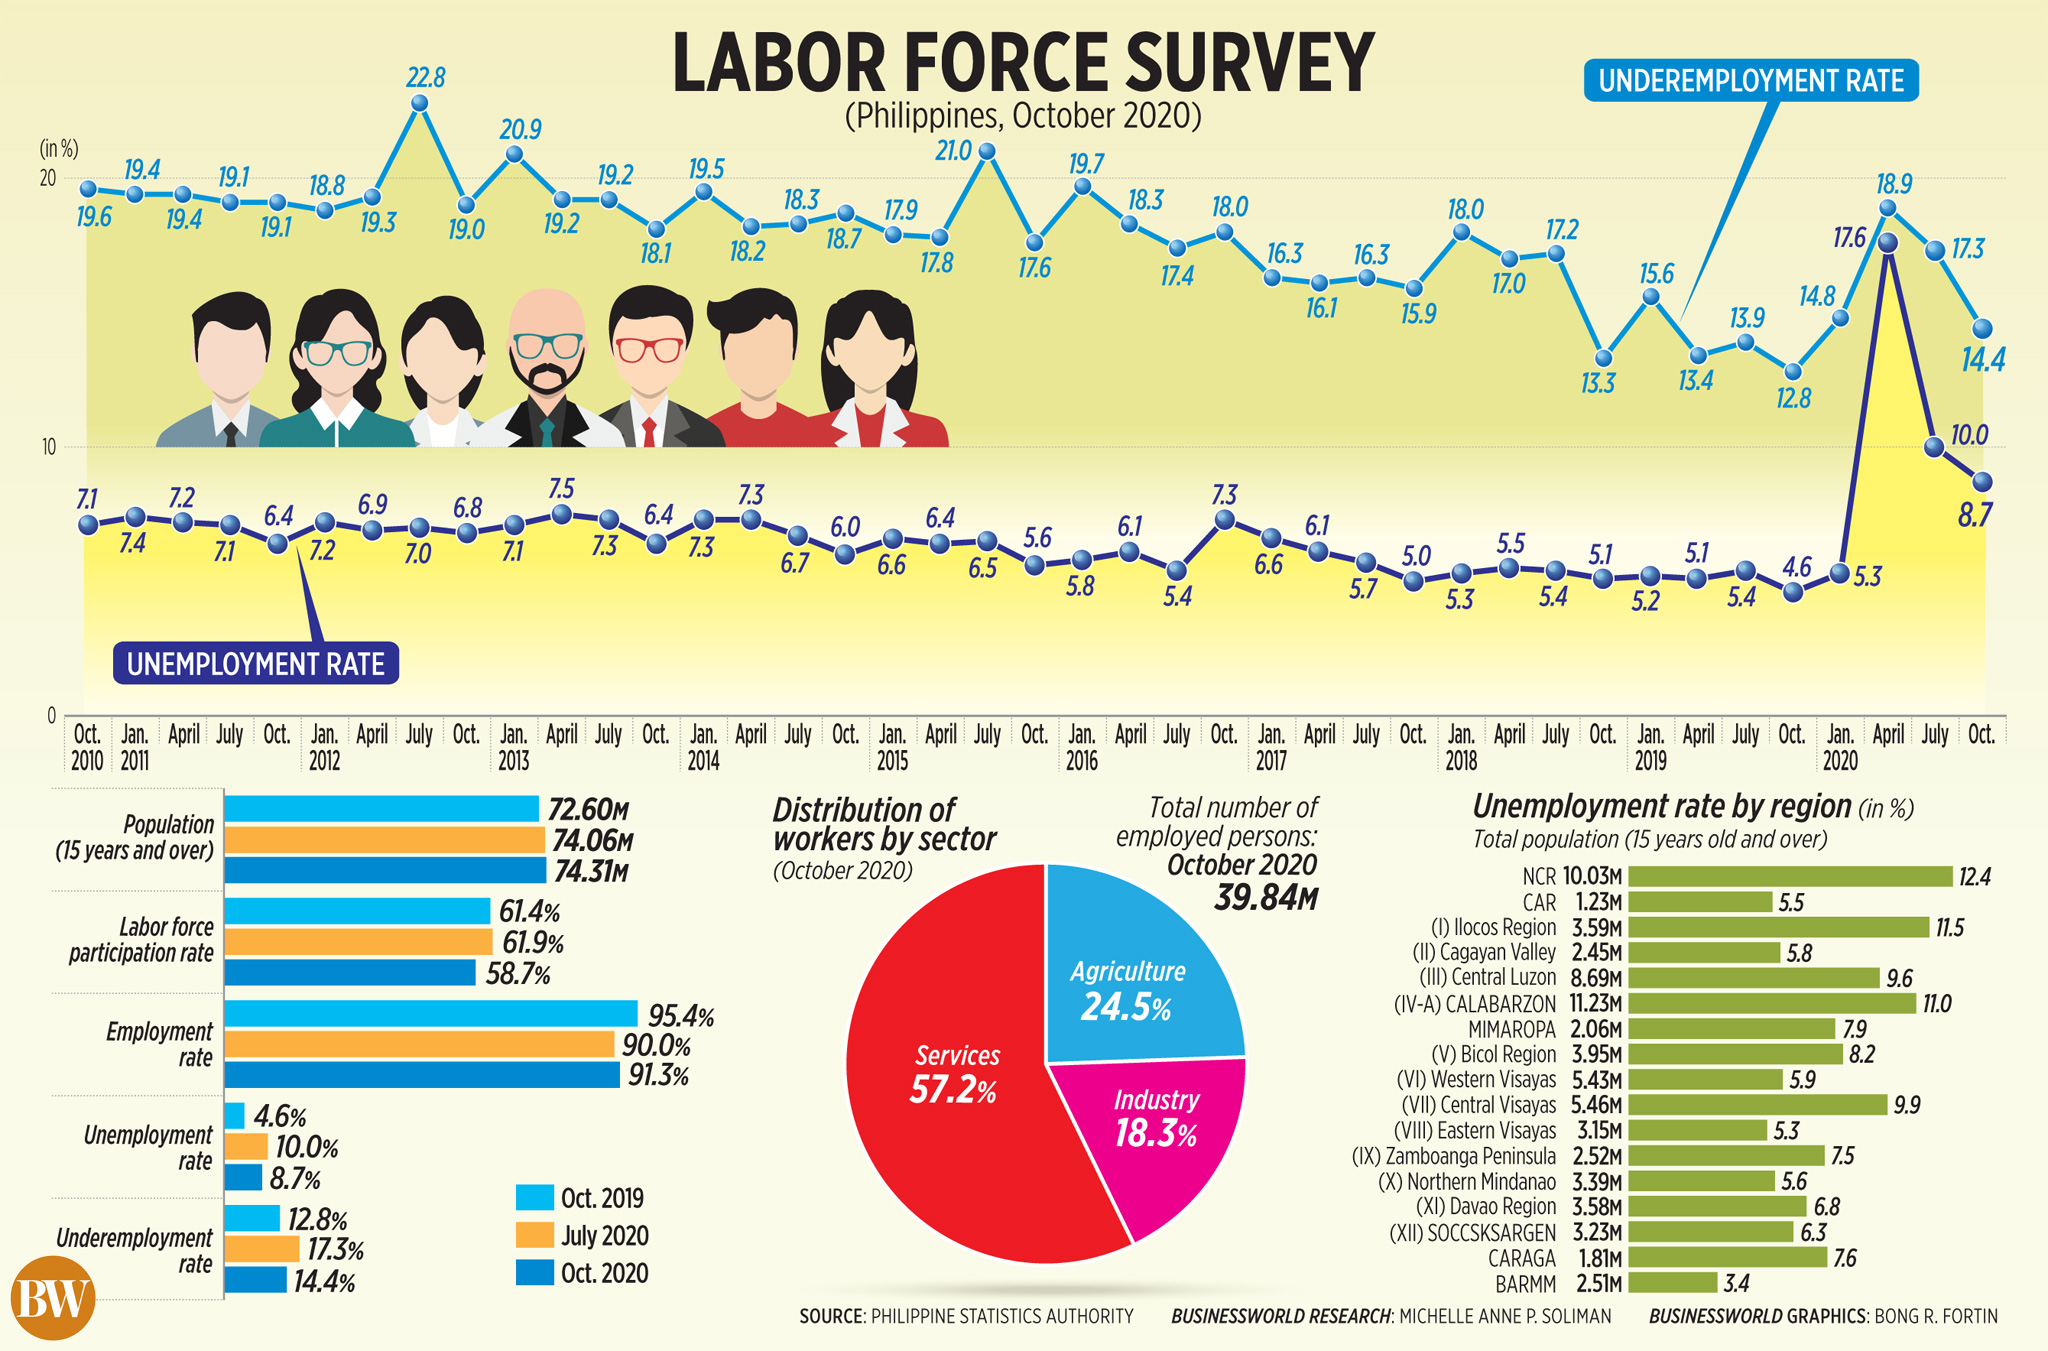 Labor force survey (Philippines, October 2020)